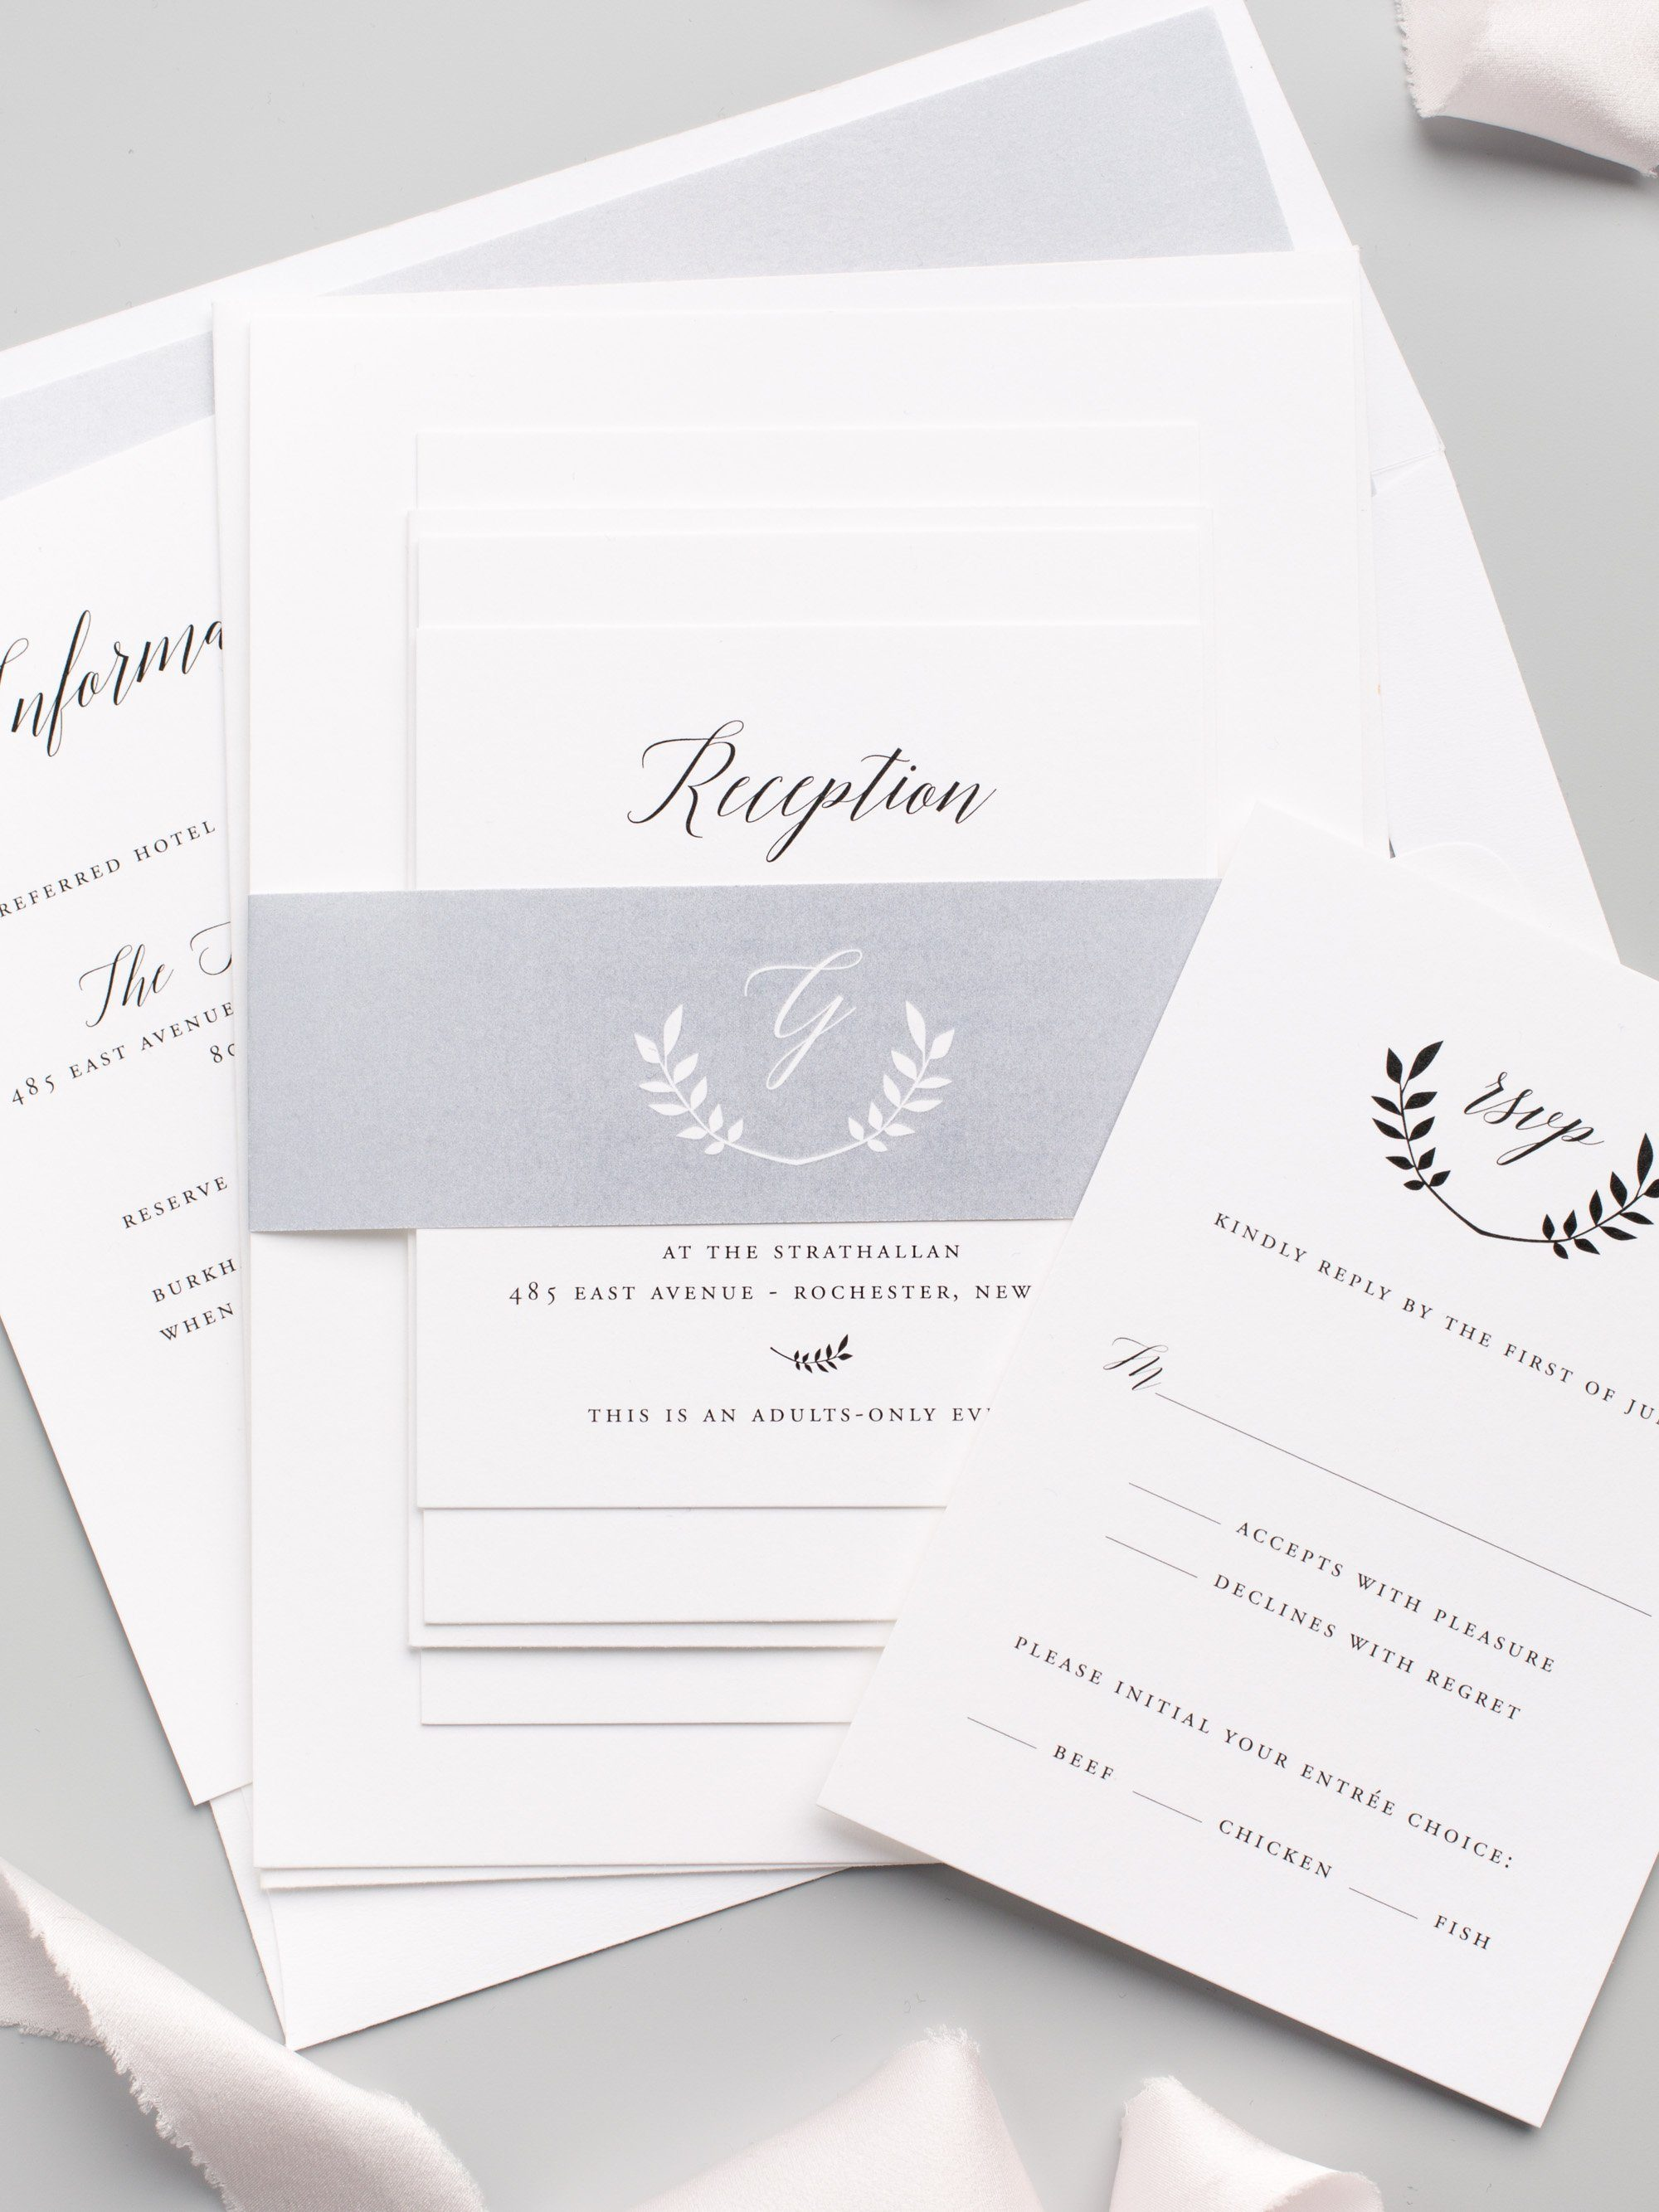 Monogram Wedding Invitations in Gray with Olive Leaves and Modern Calligraphy